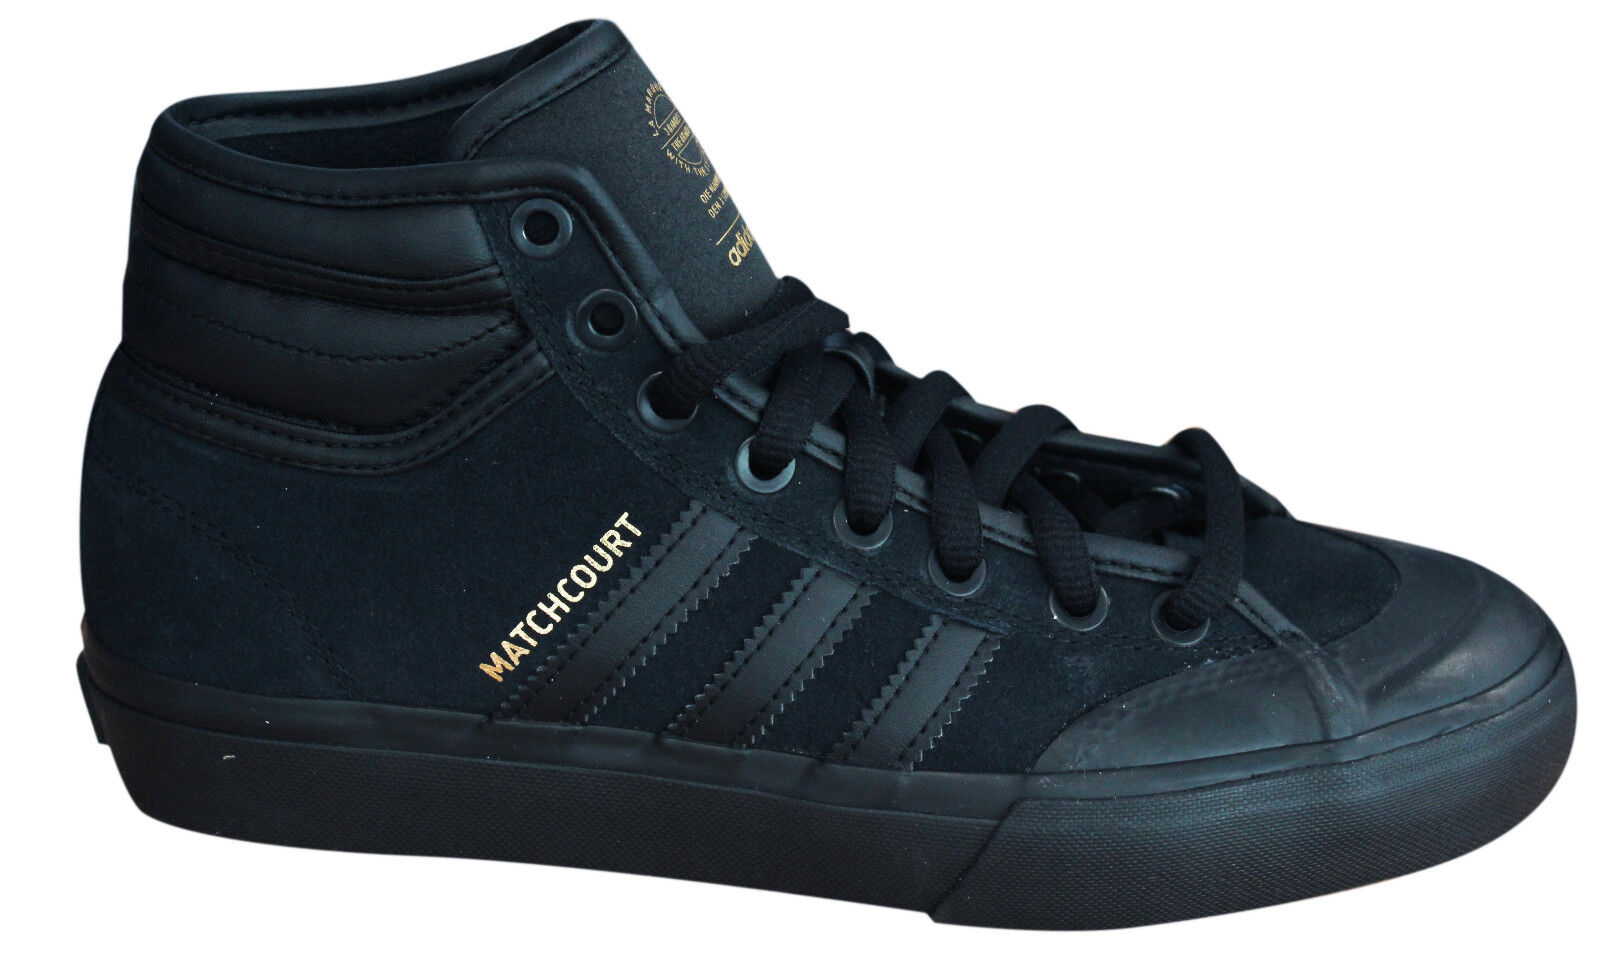 Adidas Originals Matchcourt High RX2 Mens Lace Up Trainers Black BY4103 M17 best-selling model of the brand